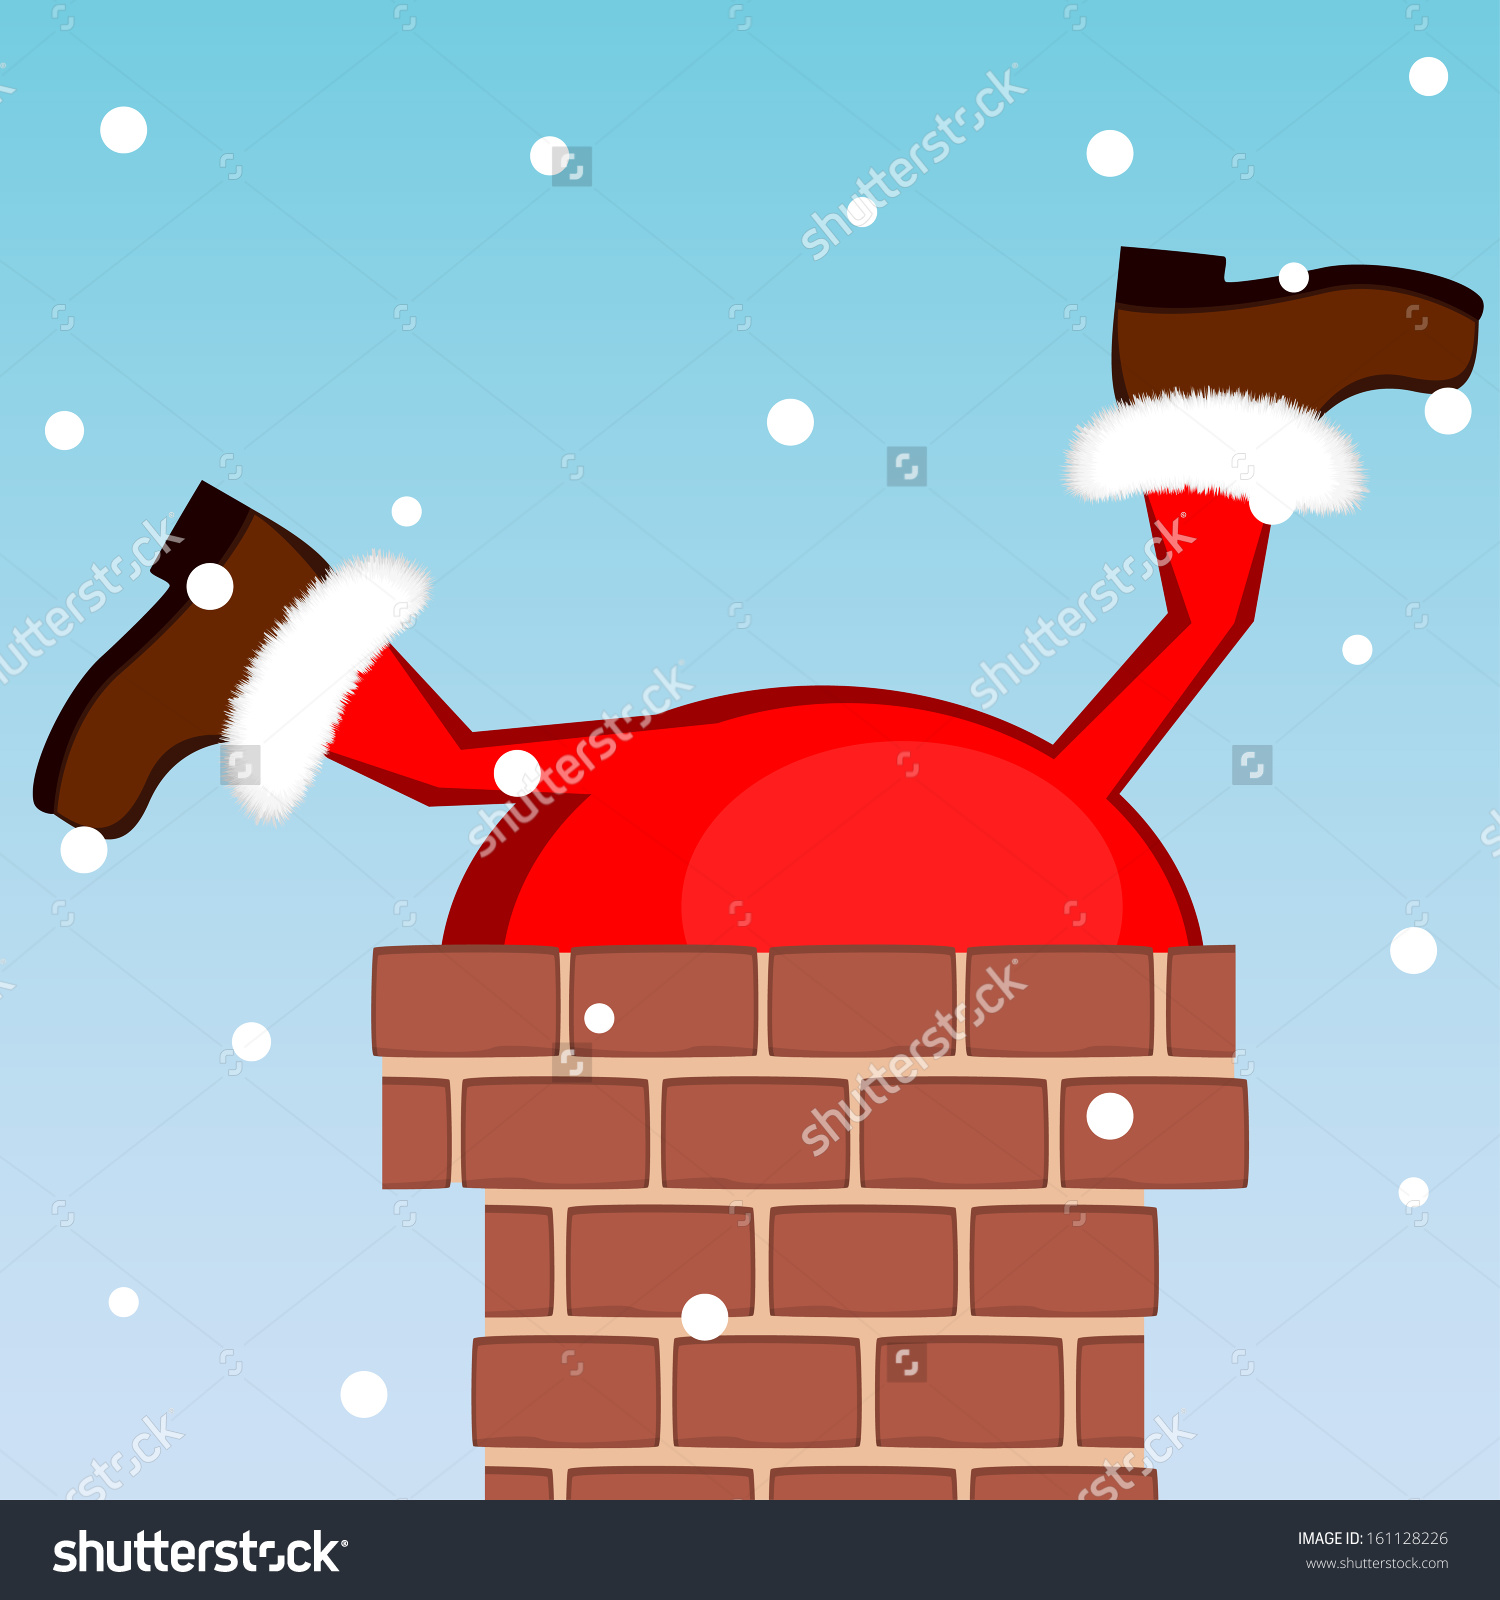 santa stuck in a chimney clipart #6